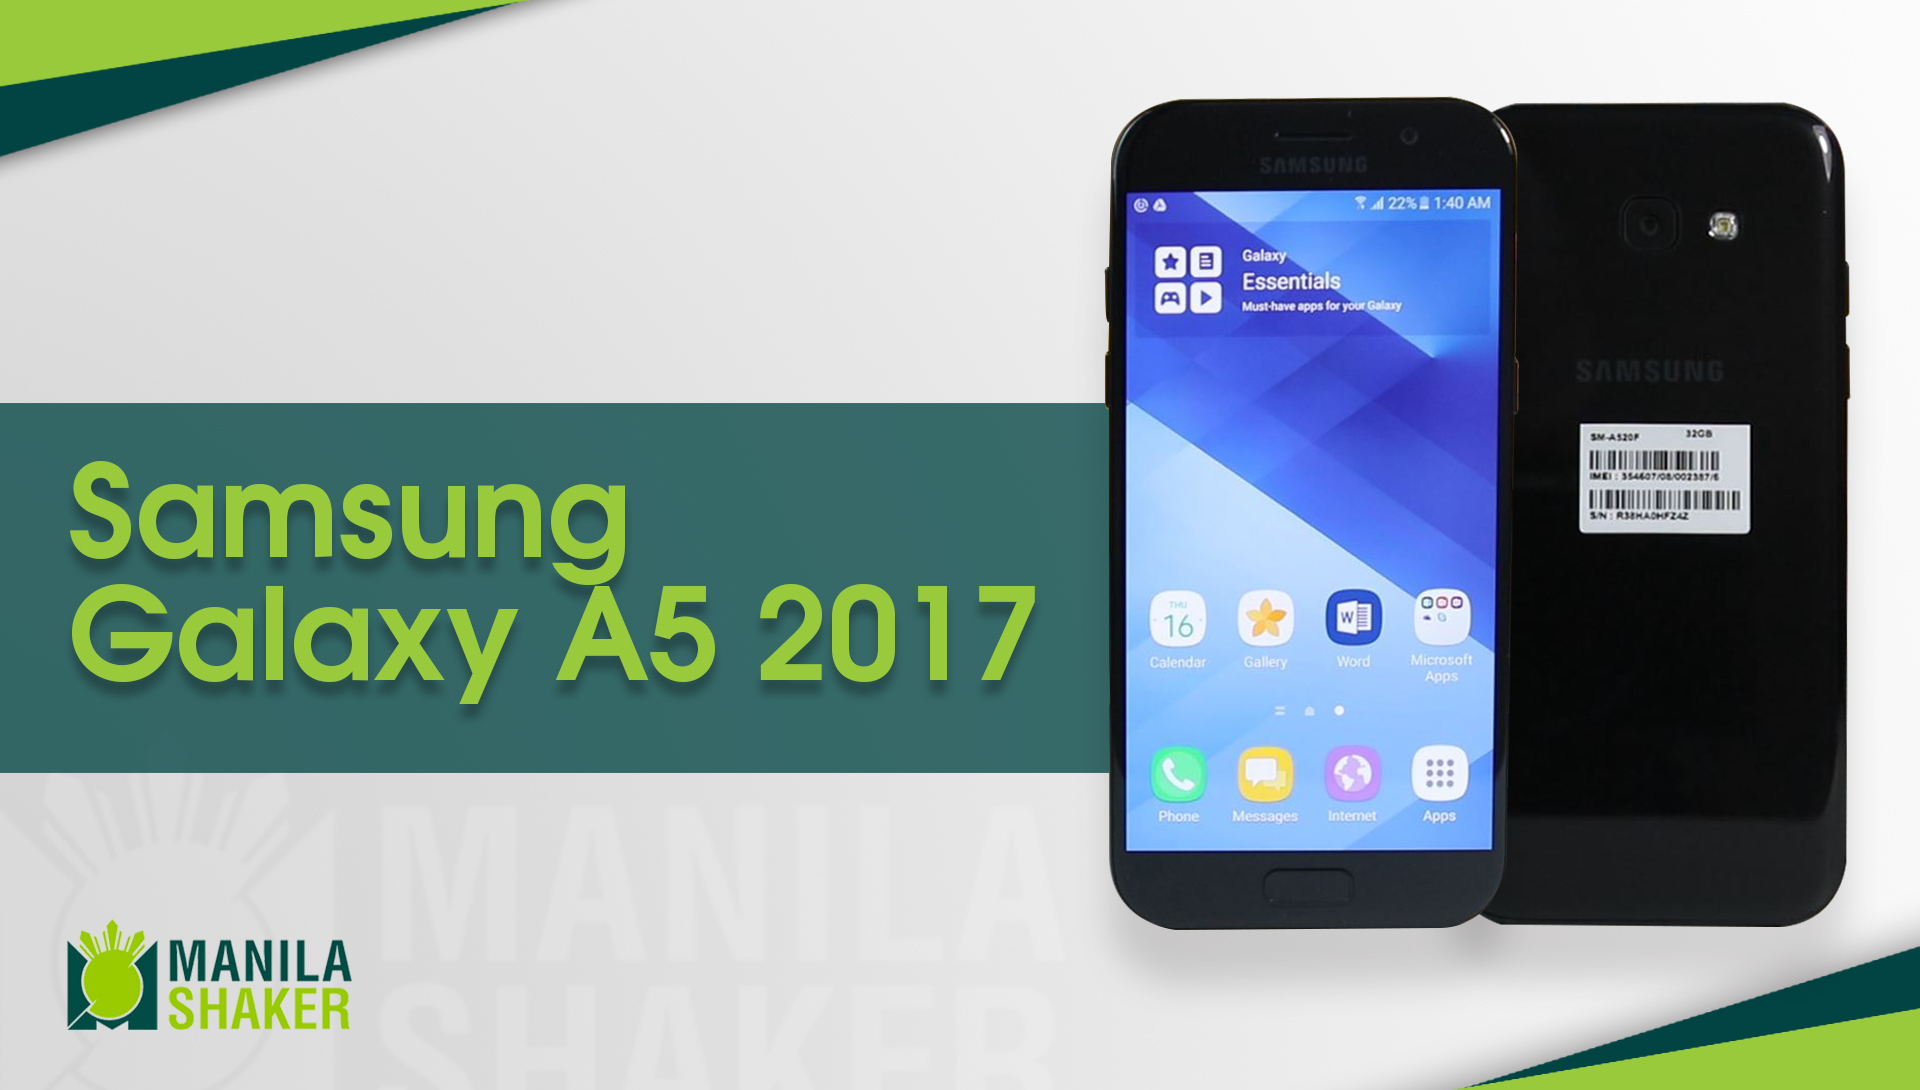 Samsung Galaxy A5 2017 Full Review